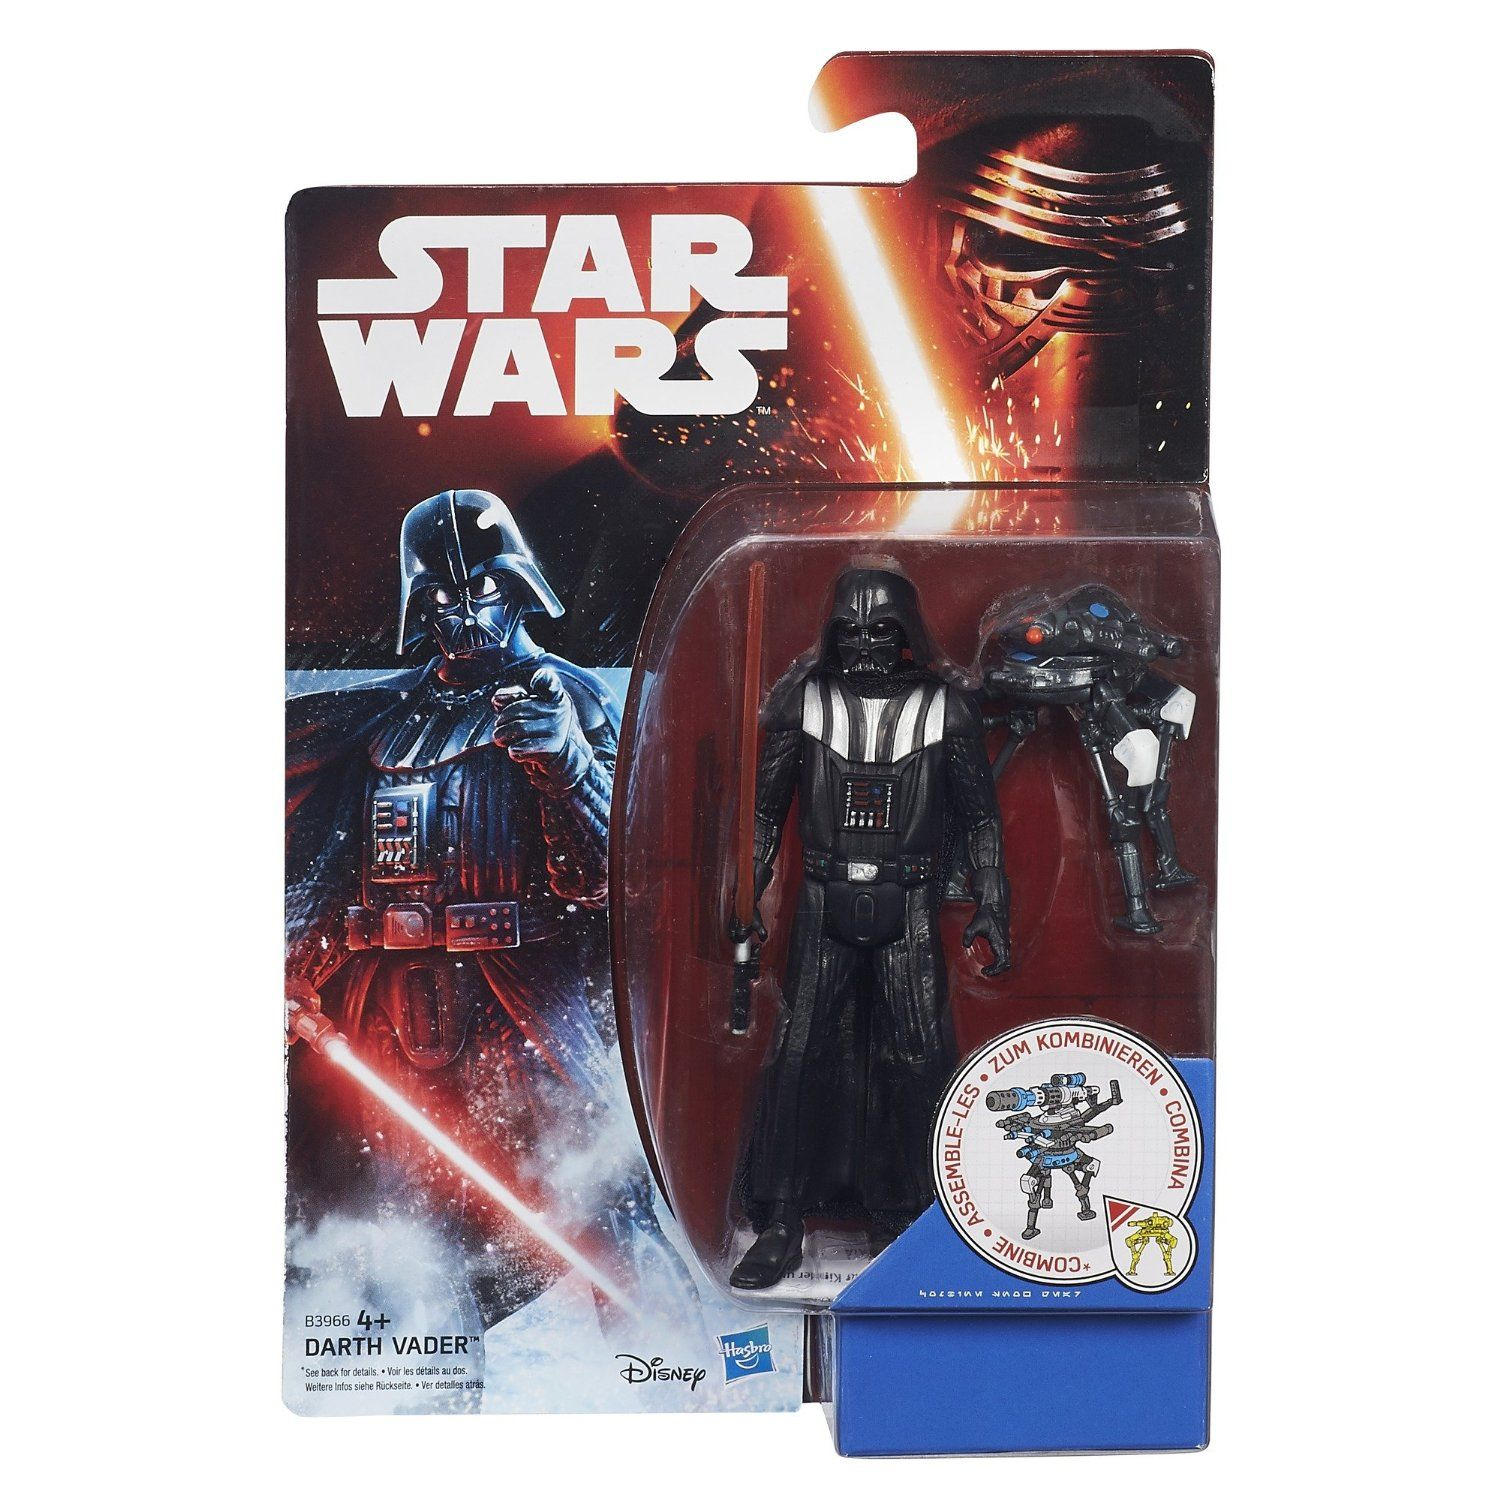 Darth Vader Star Wars Action Figure